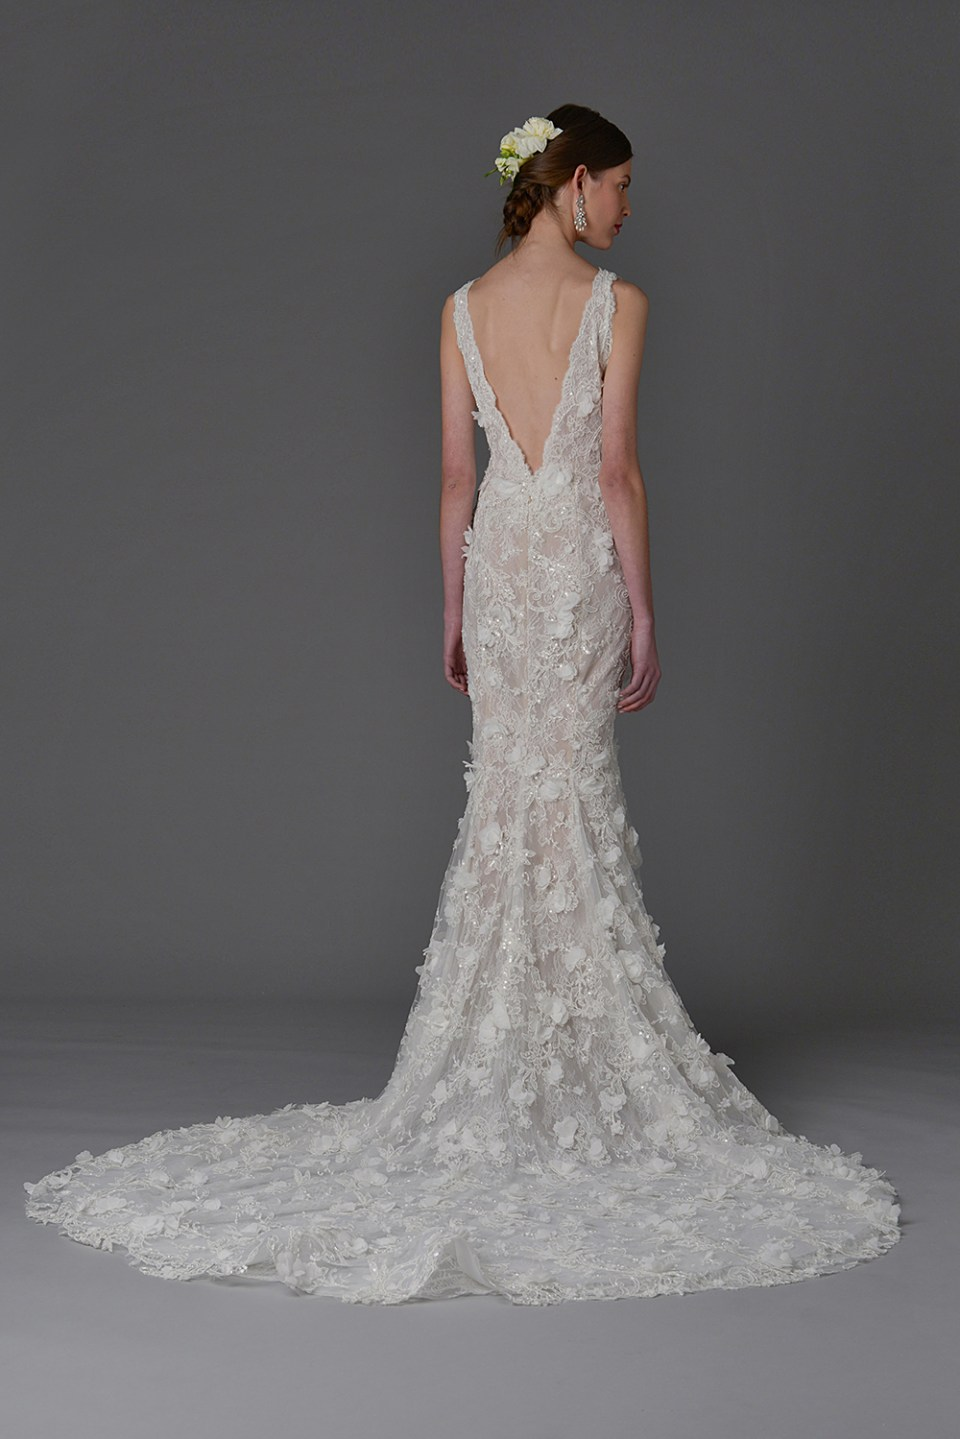 Daffodil without cape - Marchesa Spring 2017 Bridal Collection. www.theweddingnotebook.com